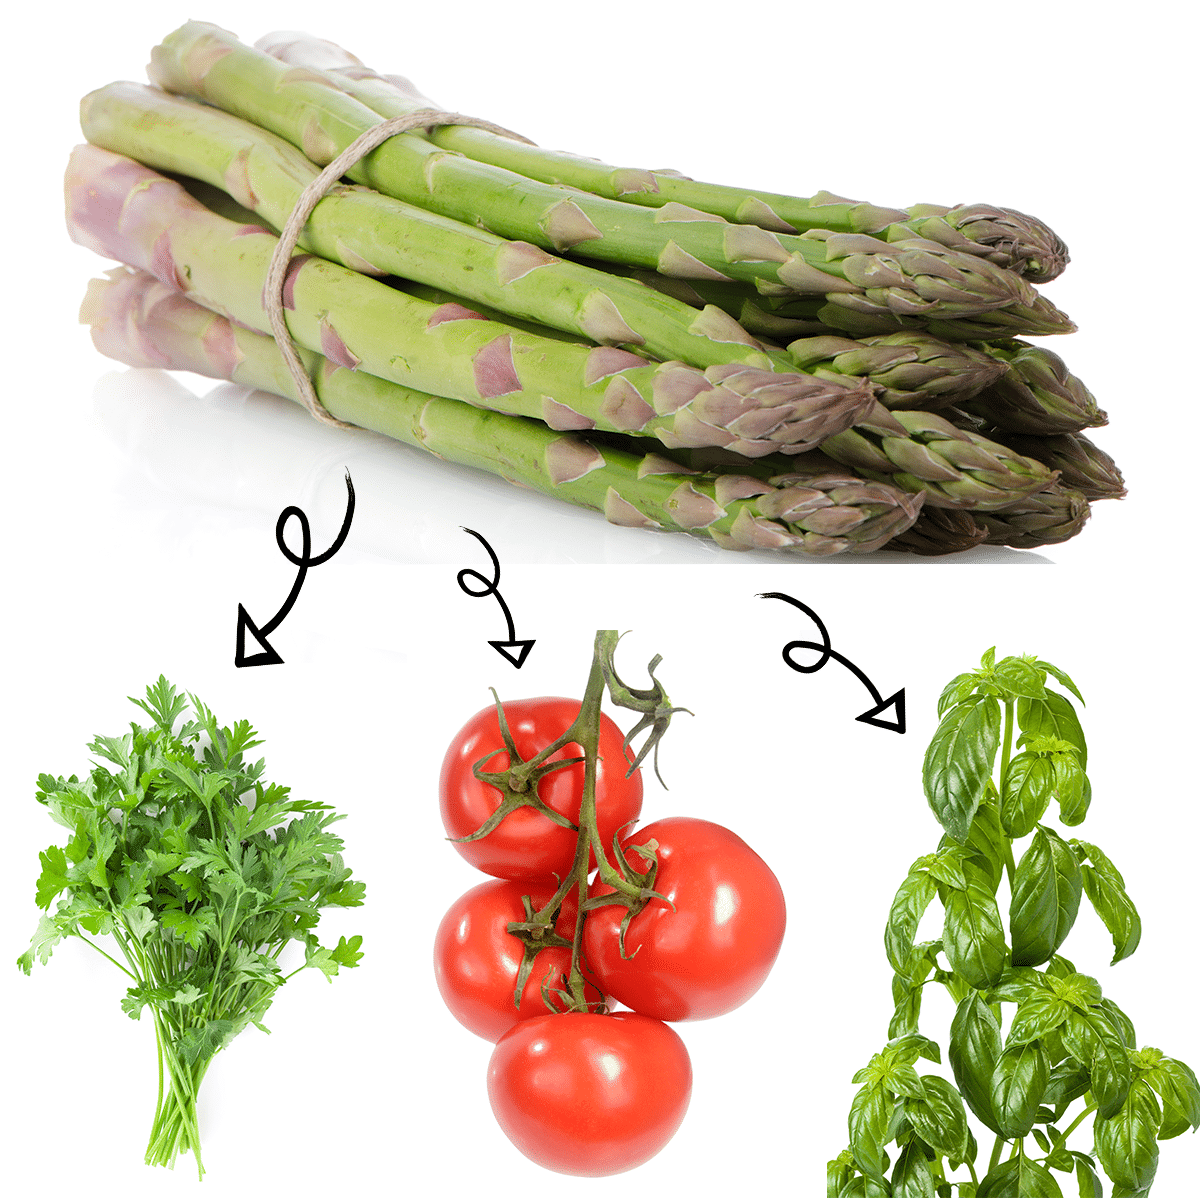 Bright white graphic of a bundle of asparagus with arrows linking it to a parsley sprig, fresh ripe tomatoes on the vine, and a basil plant.